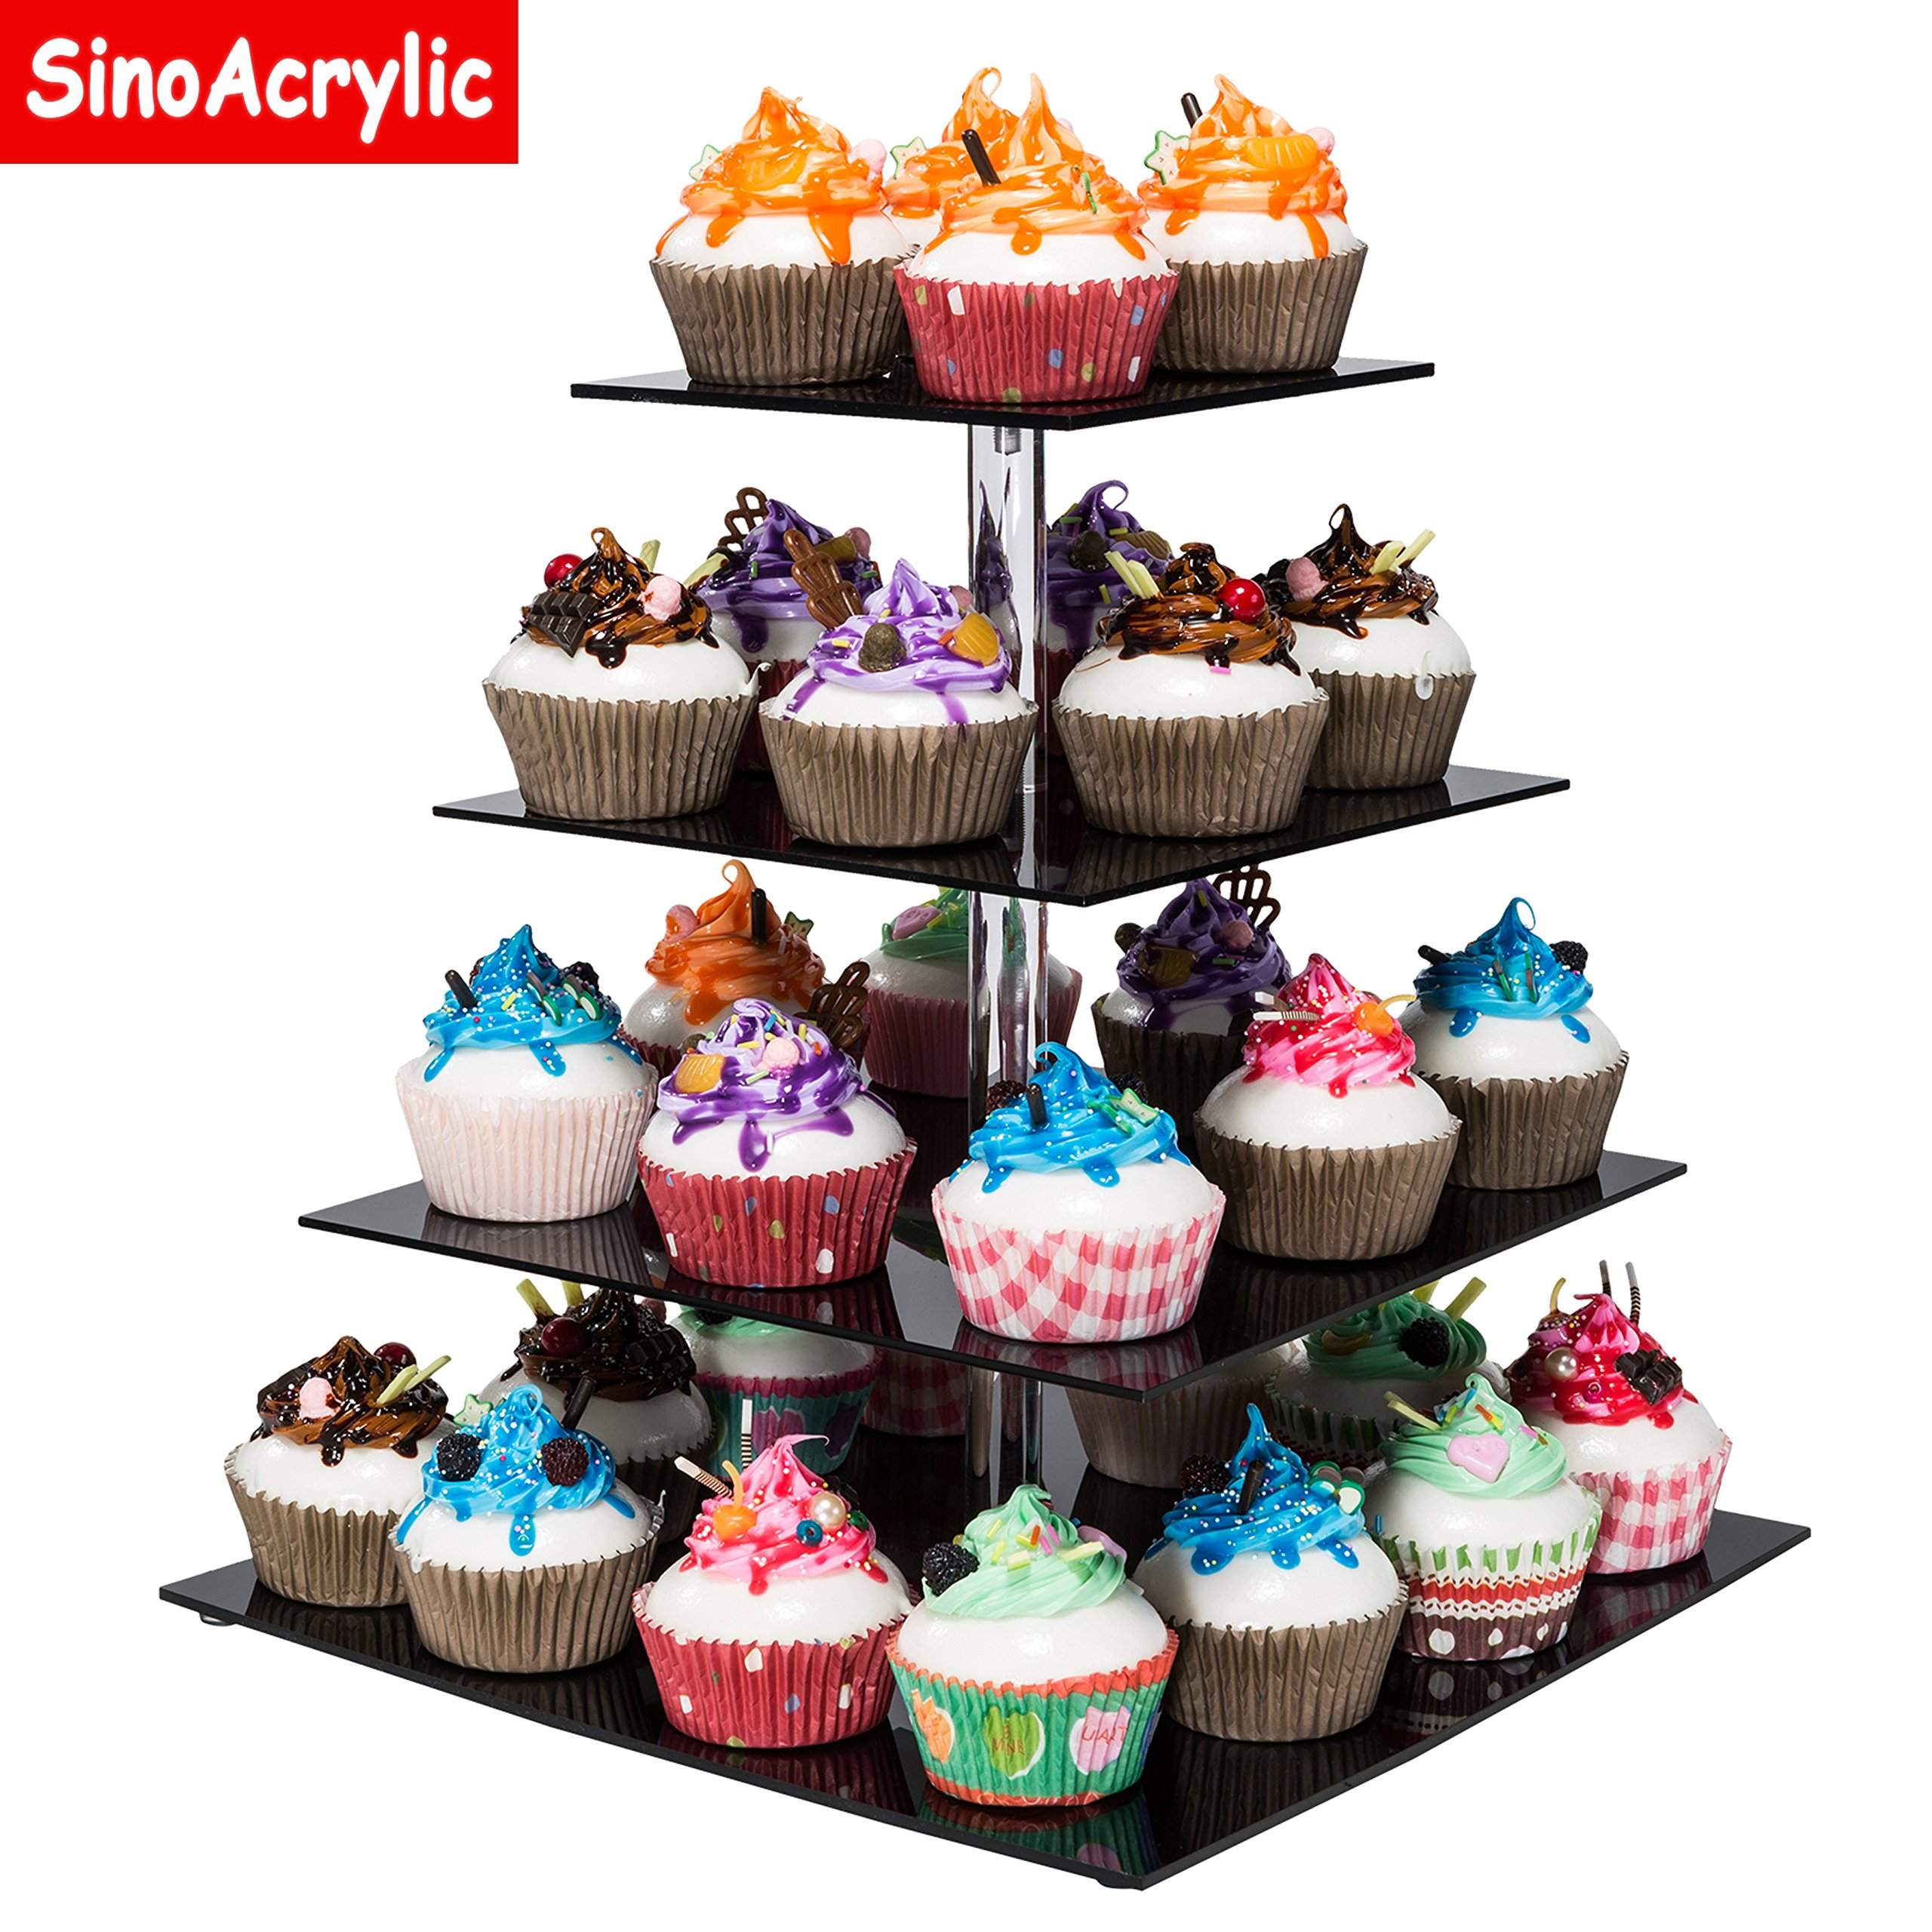 Cheap Large Tiered Cake Stand Find Deals On Cupcake Tier Get Quotations Sinoacrylic 4 Square With Fantastic Plate Dessert Display Holders Black Stacked